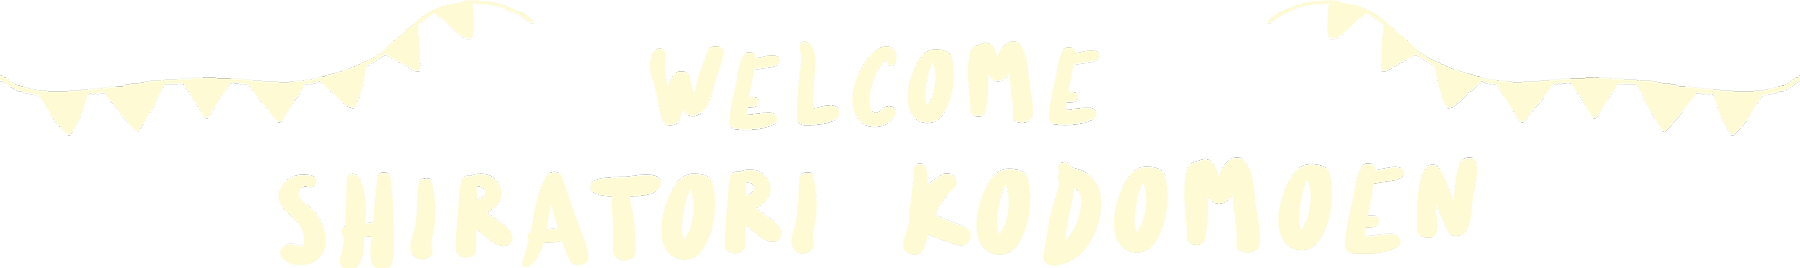 WELCOME SHIRATORI YOUCHIEN